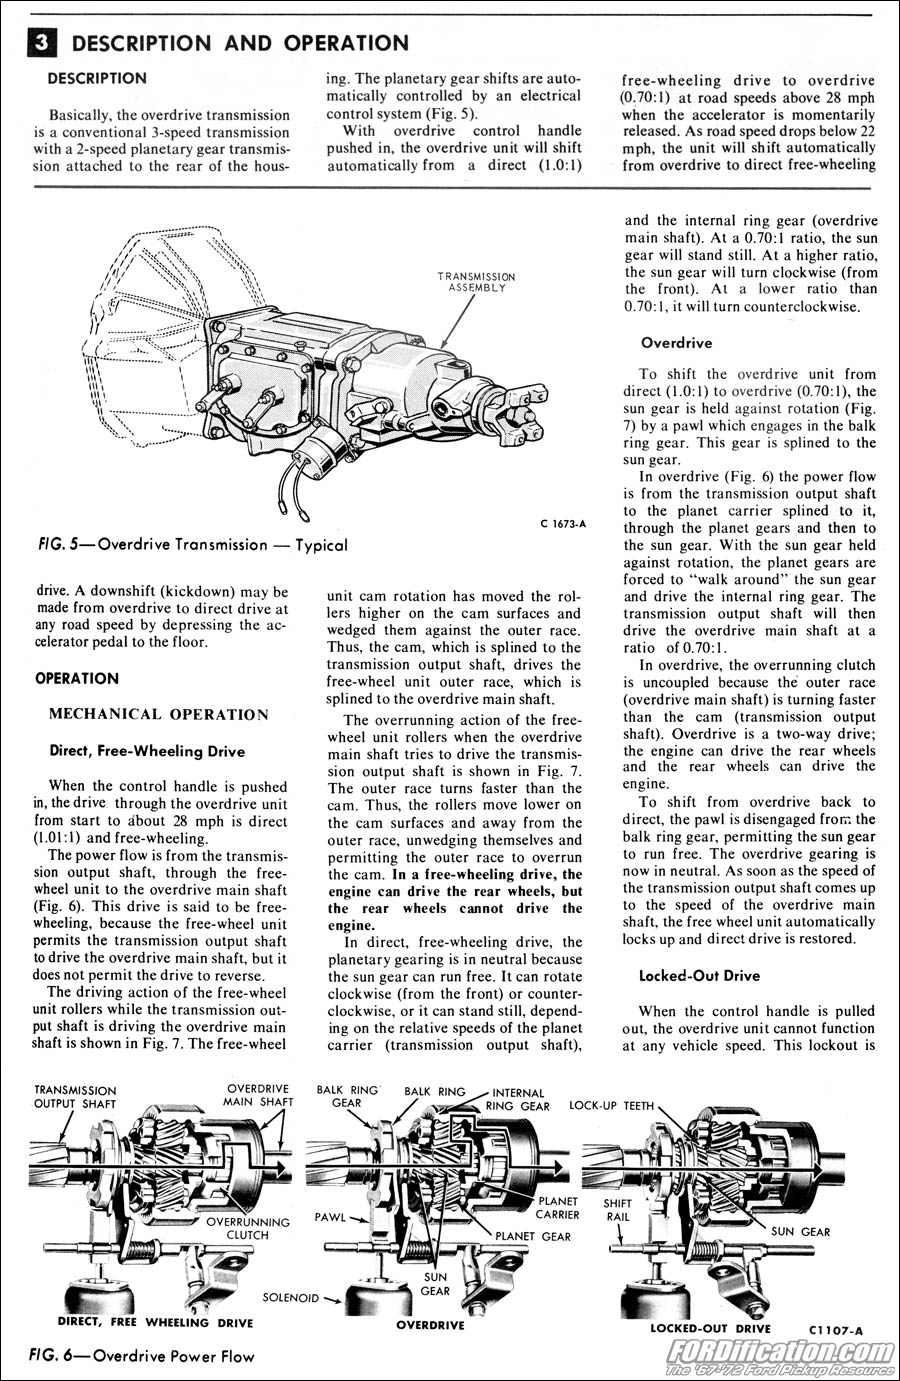 Manual Transmission S Manual Guide